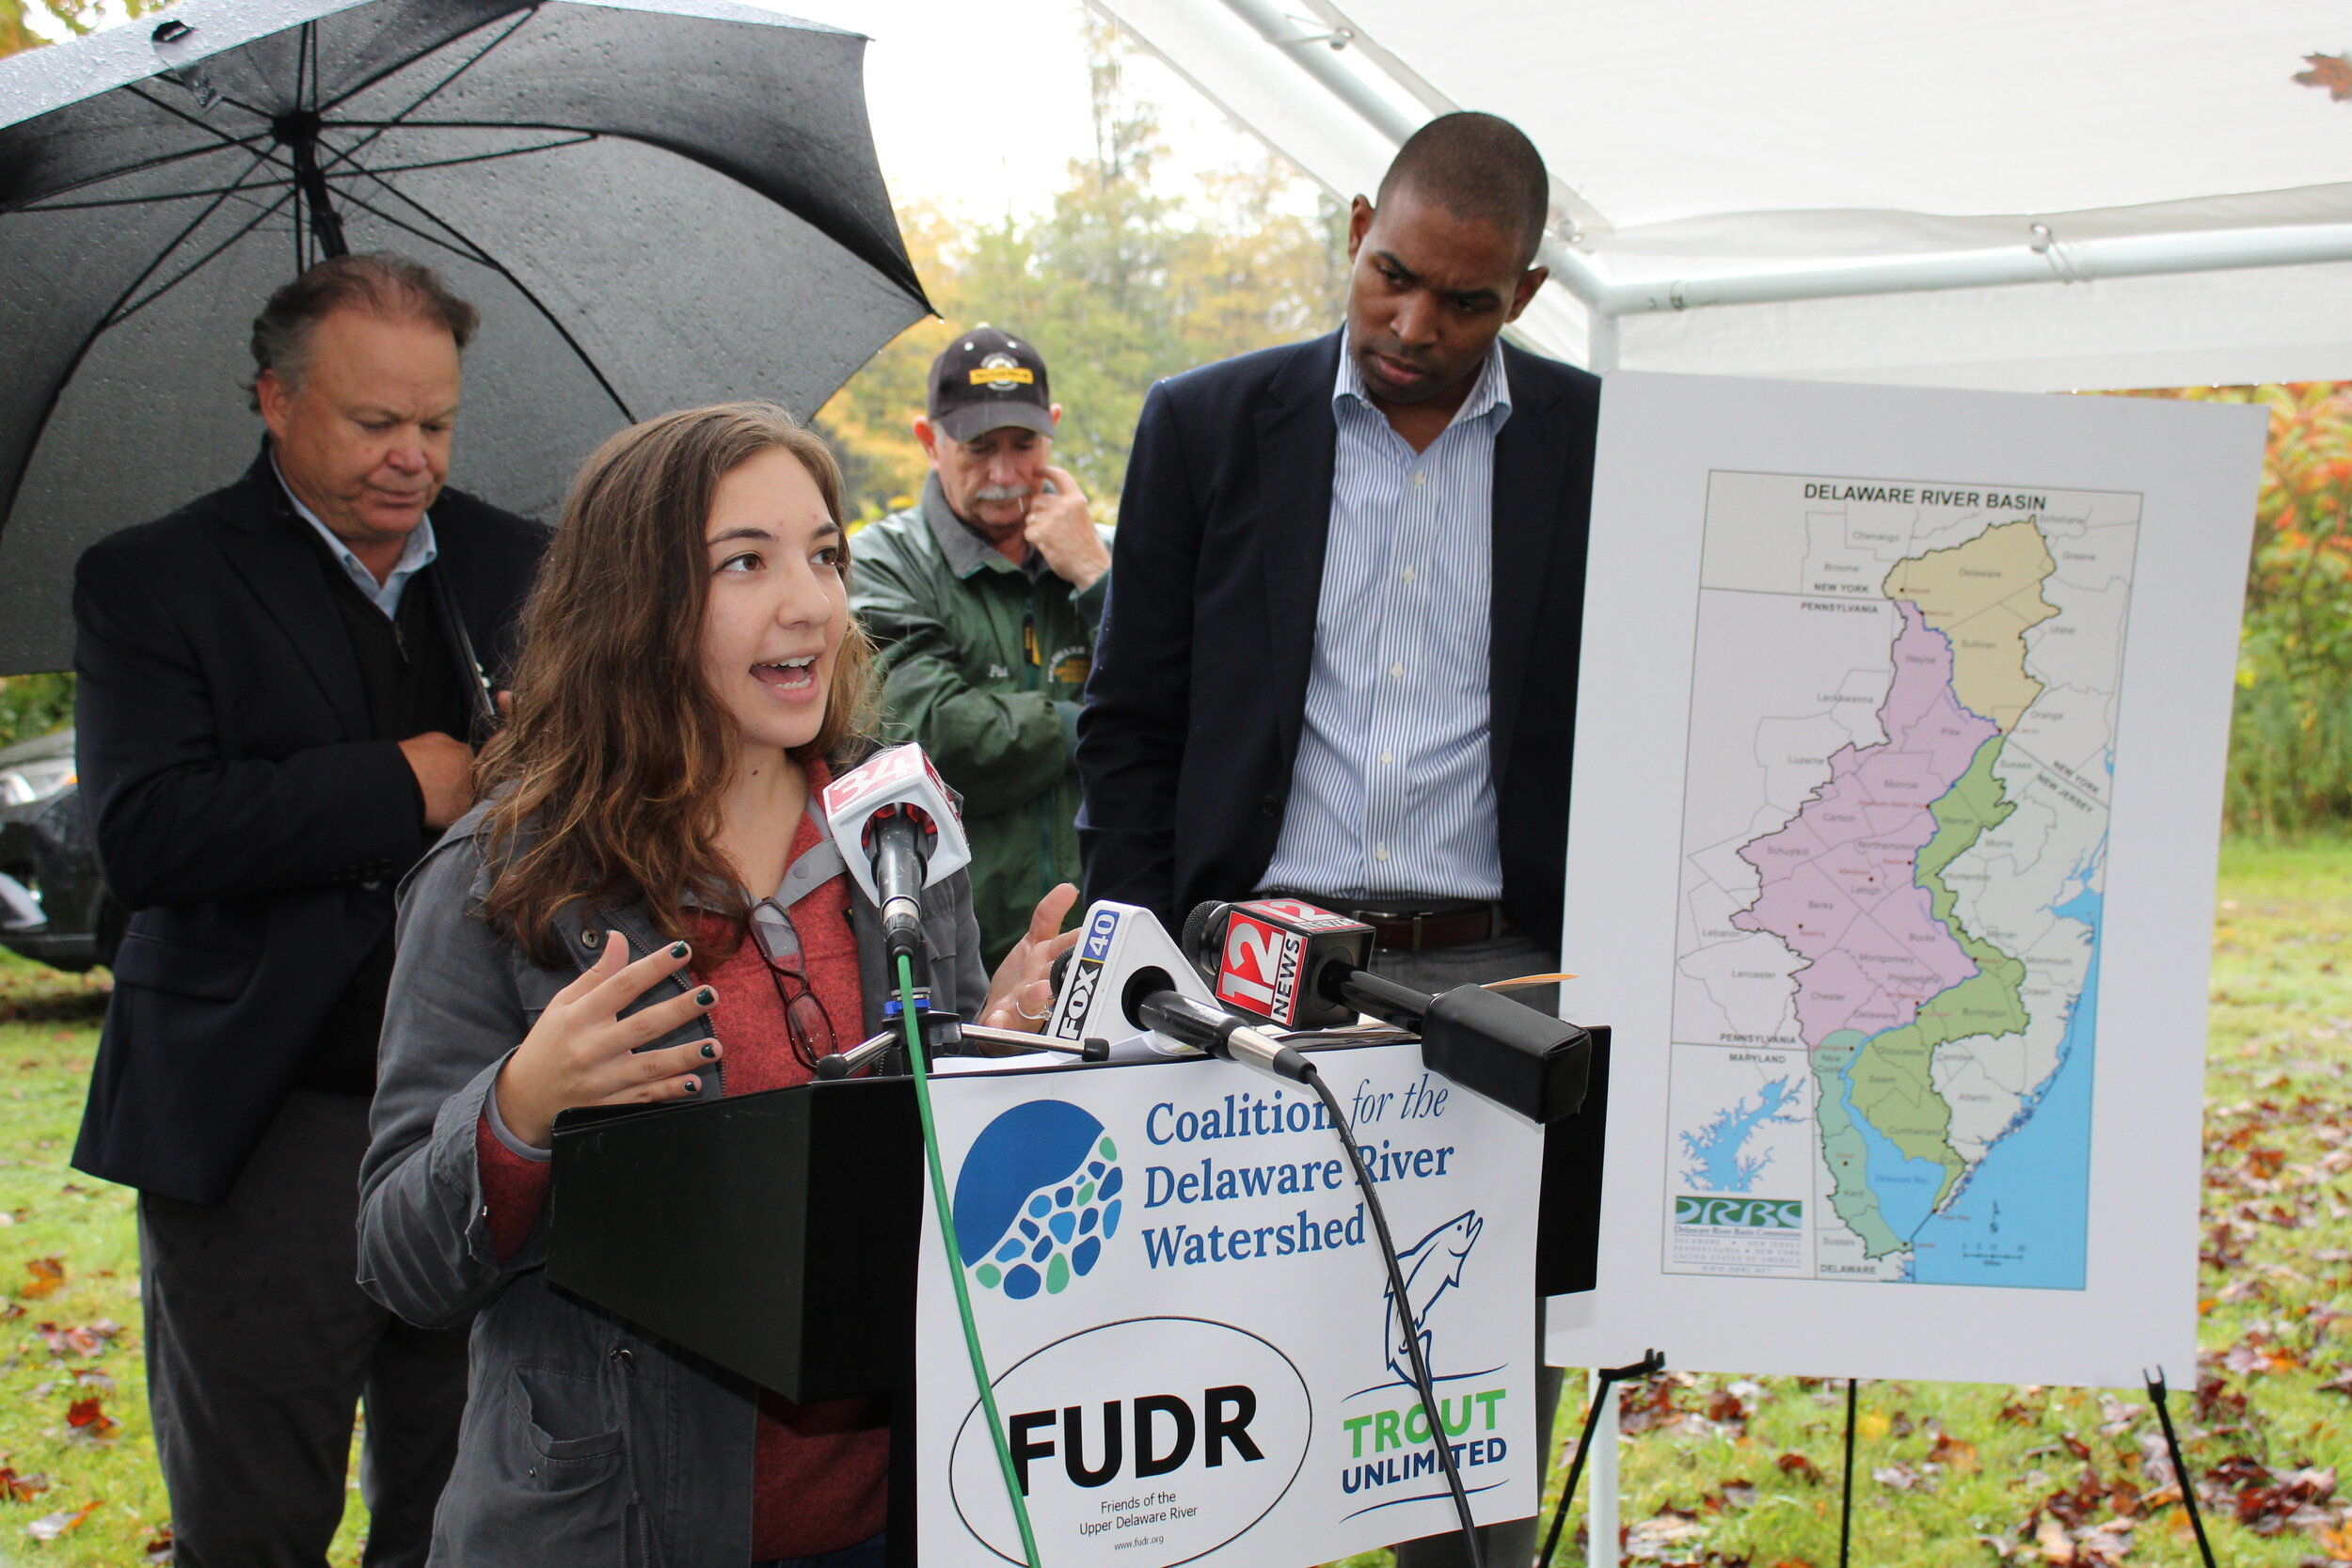 Sandra Meola, Director of the Coalition for the Delaware River Watershed, speaks to the crowd in Deposit, N.Y. on October 7, 2019